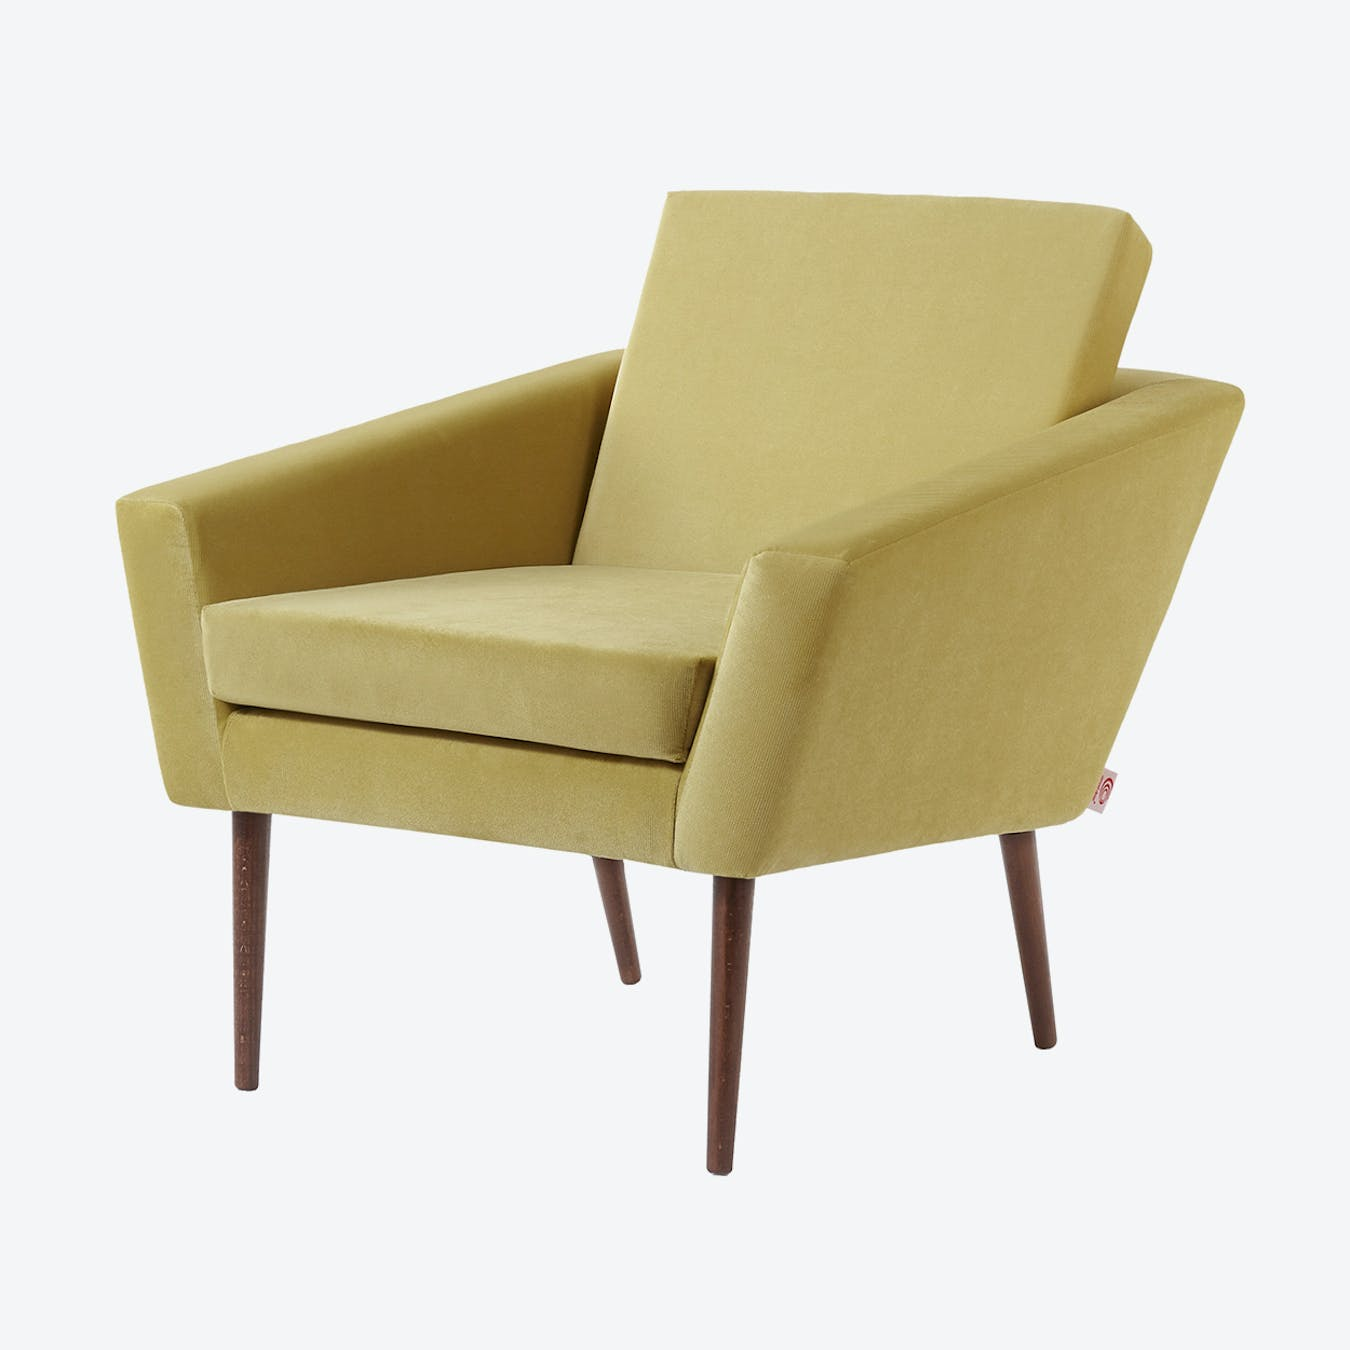 Supernova Chair - Velvet Line in Lemon Yellow